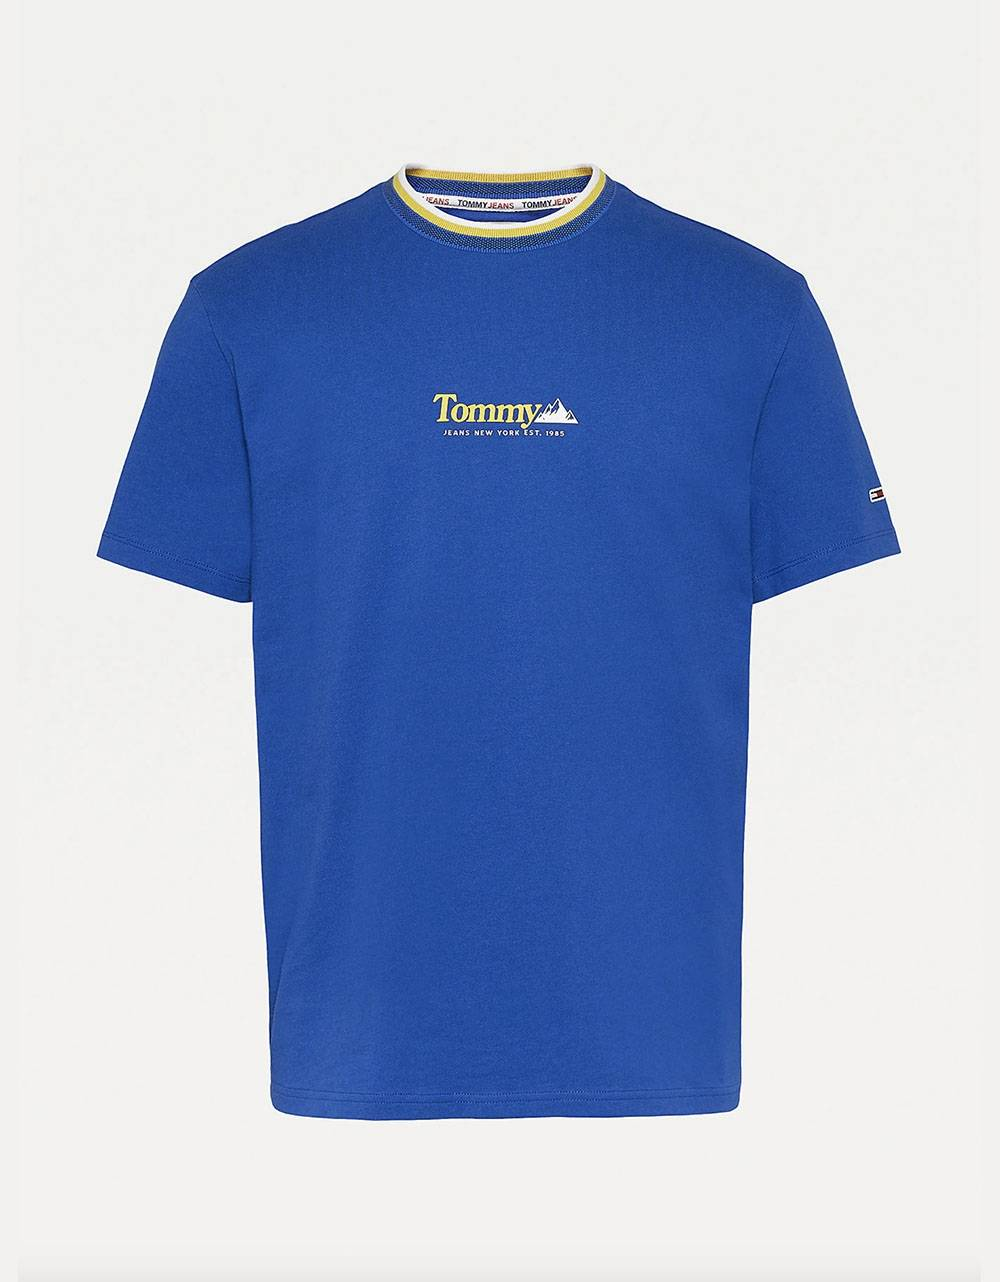 Tommy Jeans Contrast Mountain tee - providence blue Tommy Jeans T-shirt 42,00€